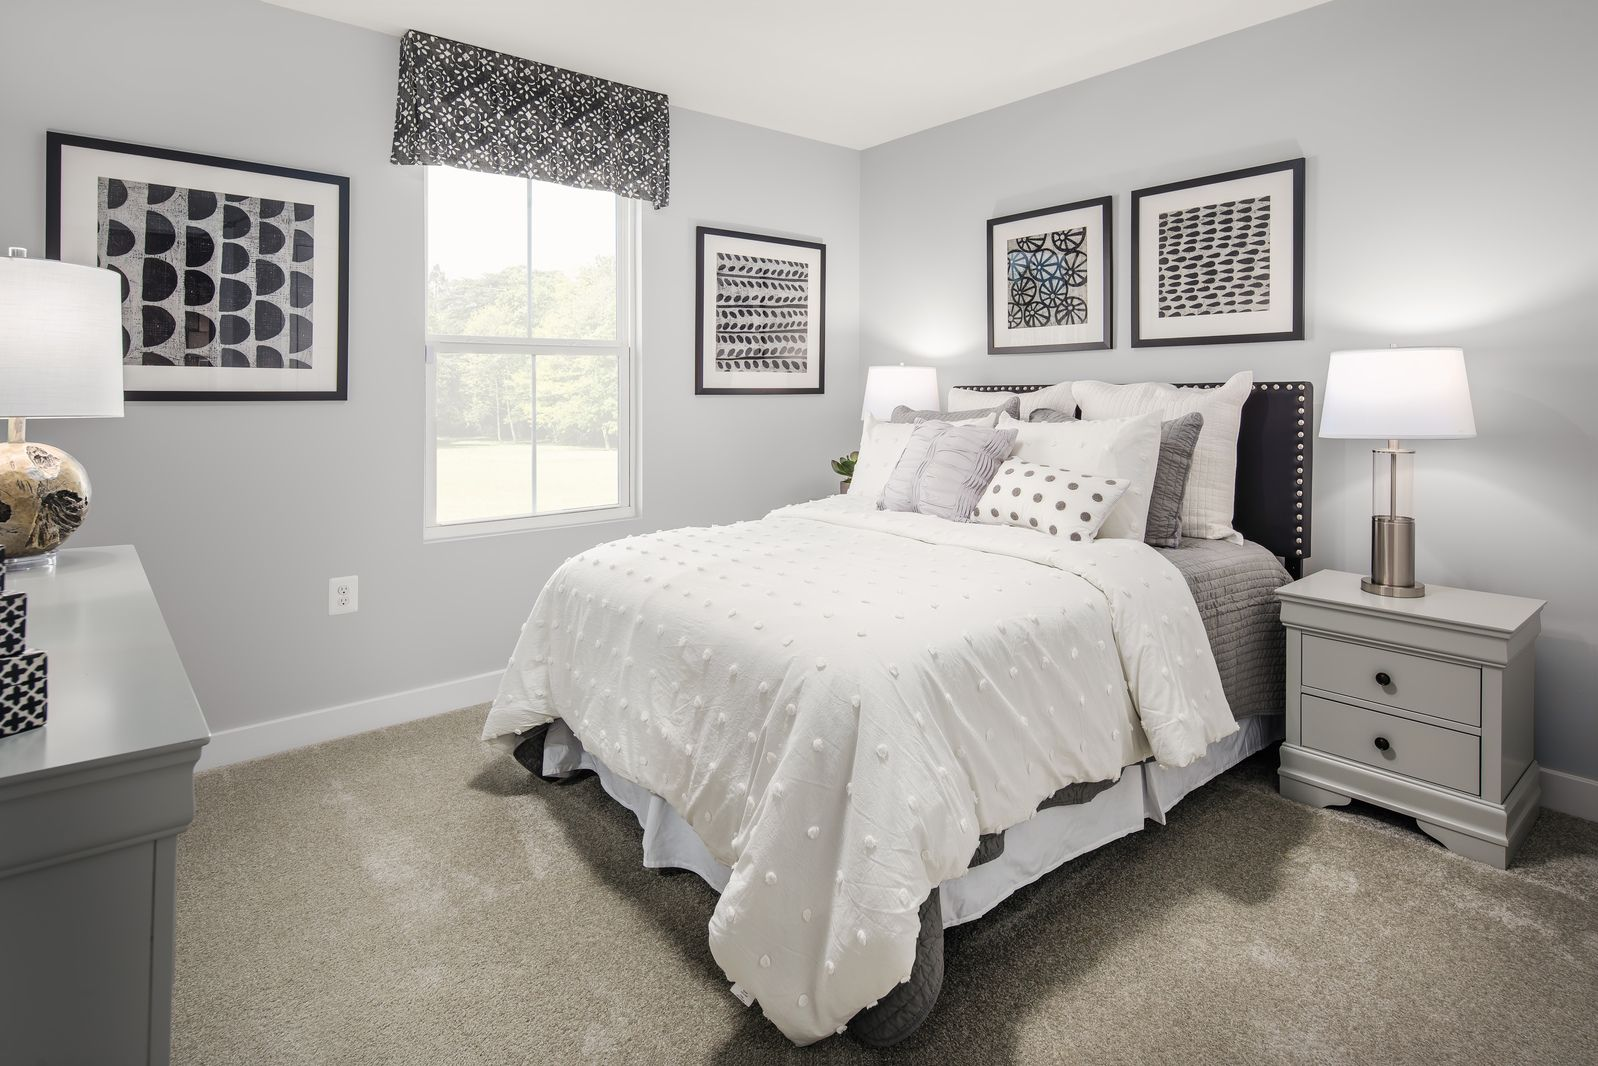 Bedroom featured in the Grand Bahama w/ Basement By Ryan Homes in Charlottesville, VA